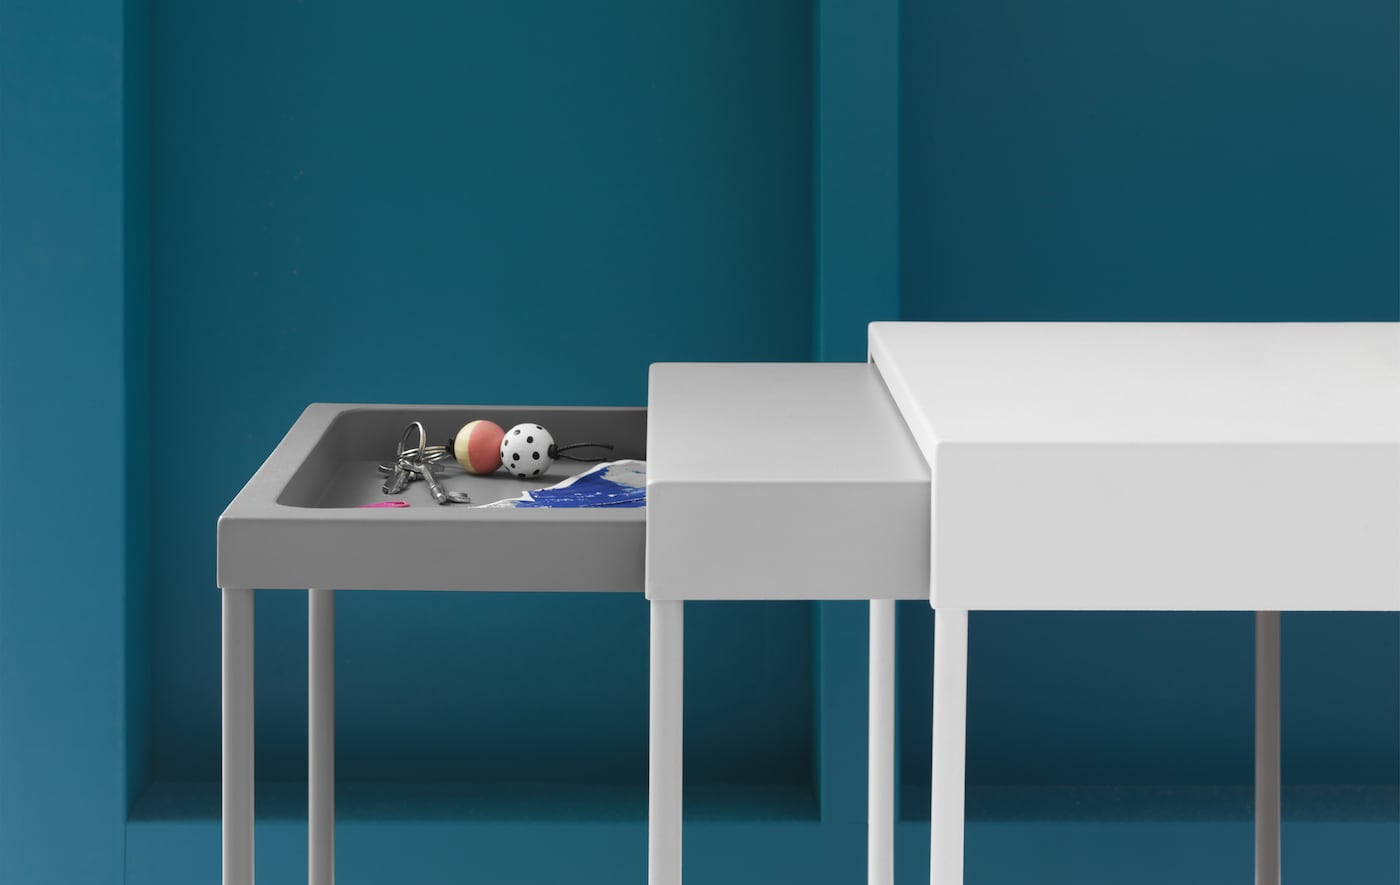 A nest of three tables with a tray in the top of the smallest table.